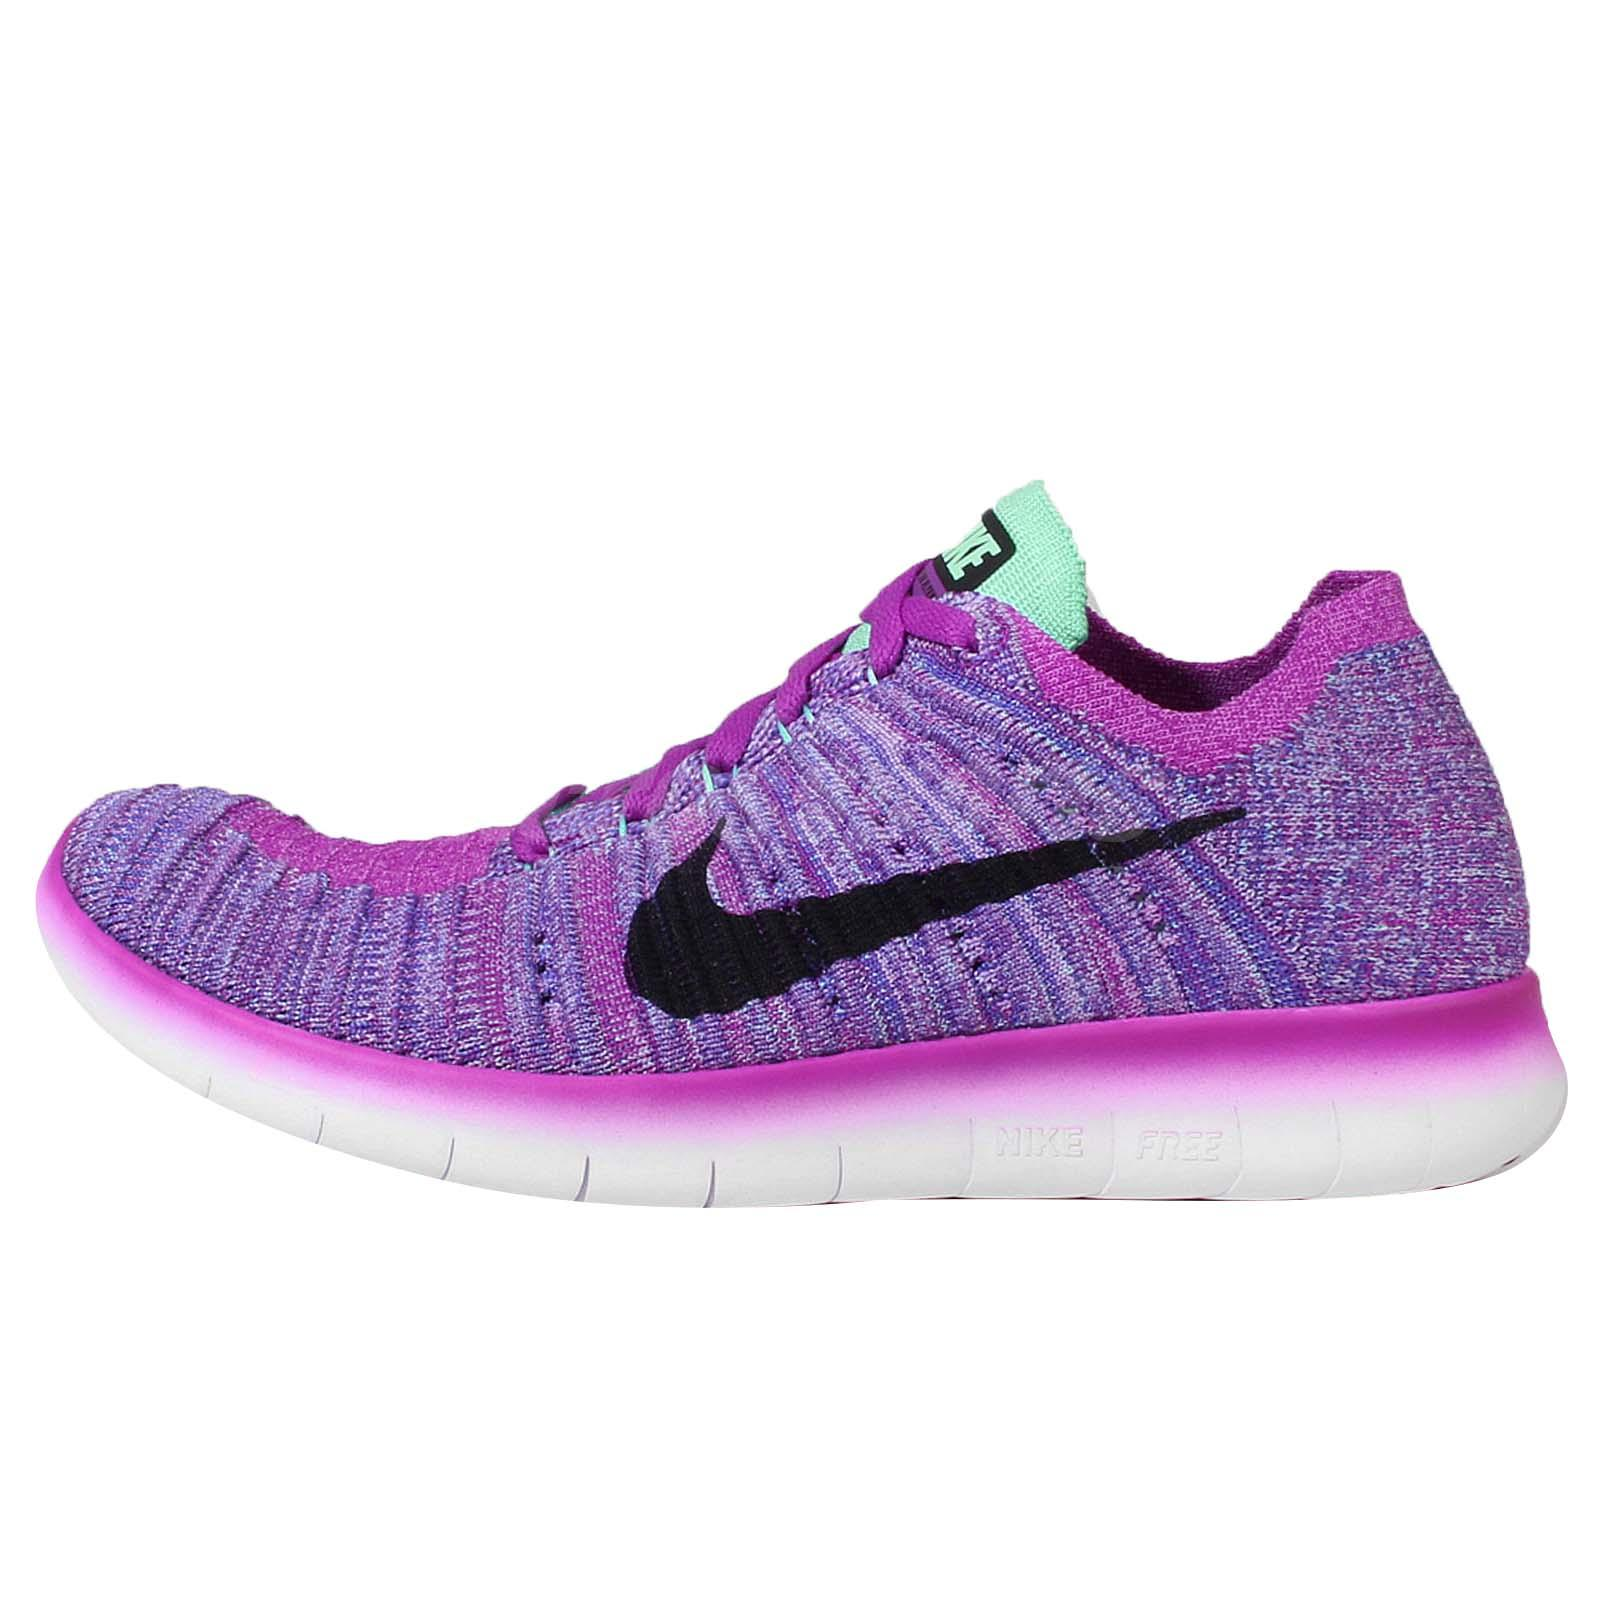 where can i buy arriving cheaper order nike free flyknit purple and black 2304d d89f1